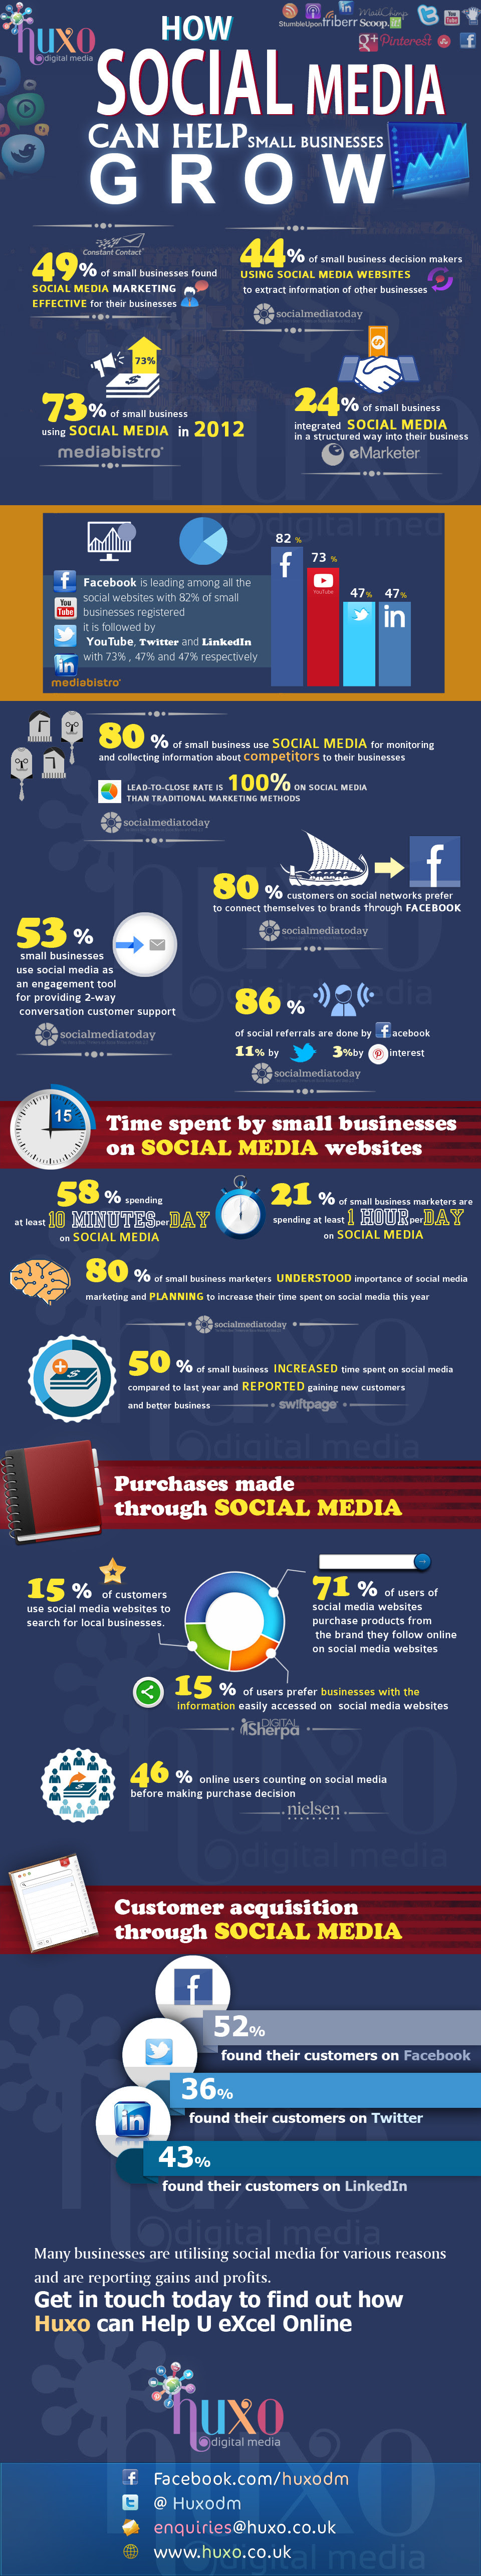 30+ Social Media Statistics - Growth of SMBs [INFOGRAPHIC] - social media marketing can help small businesses grow